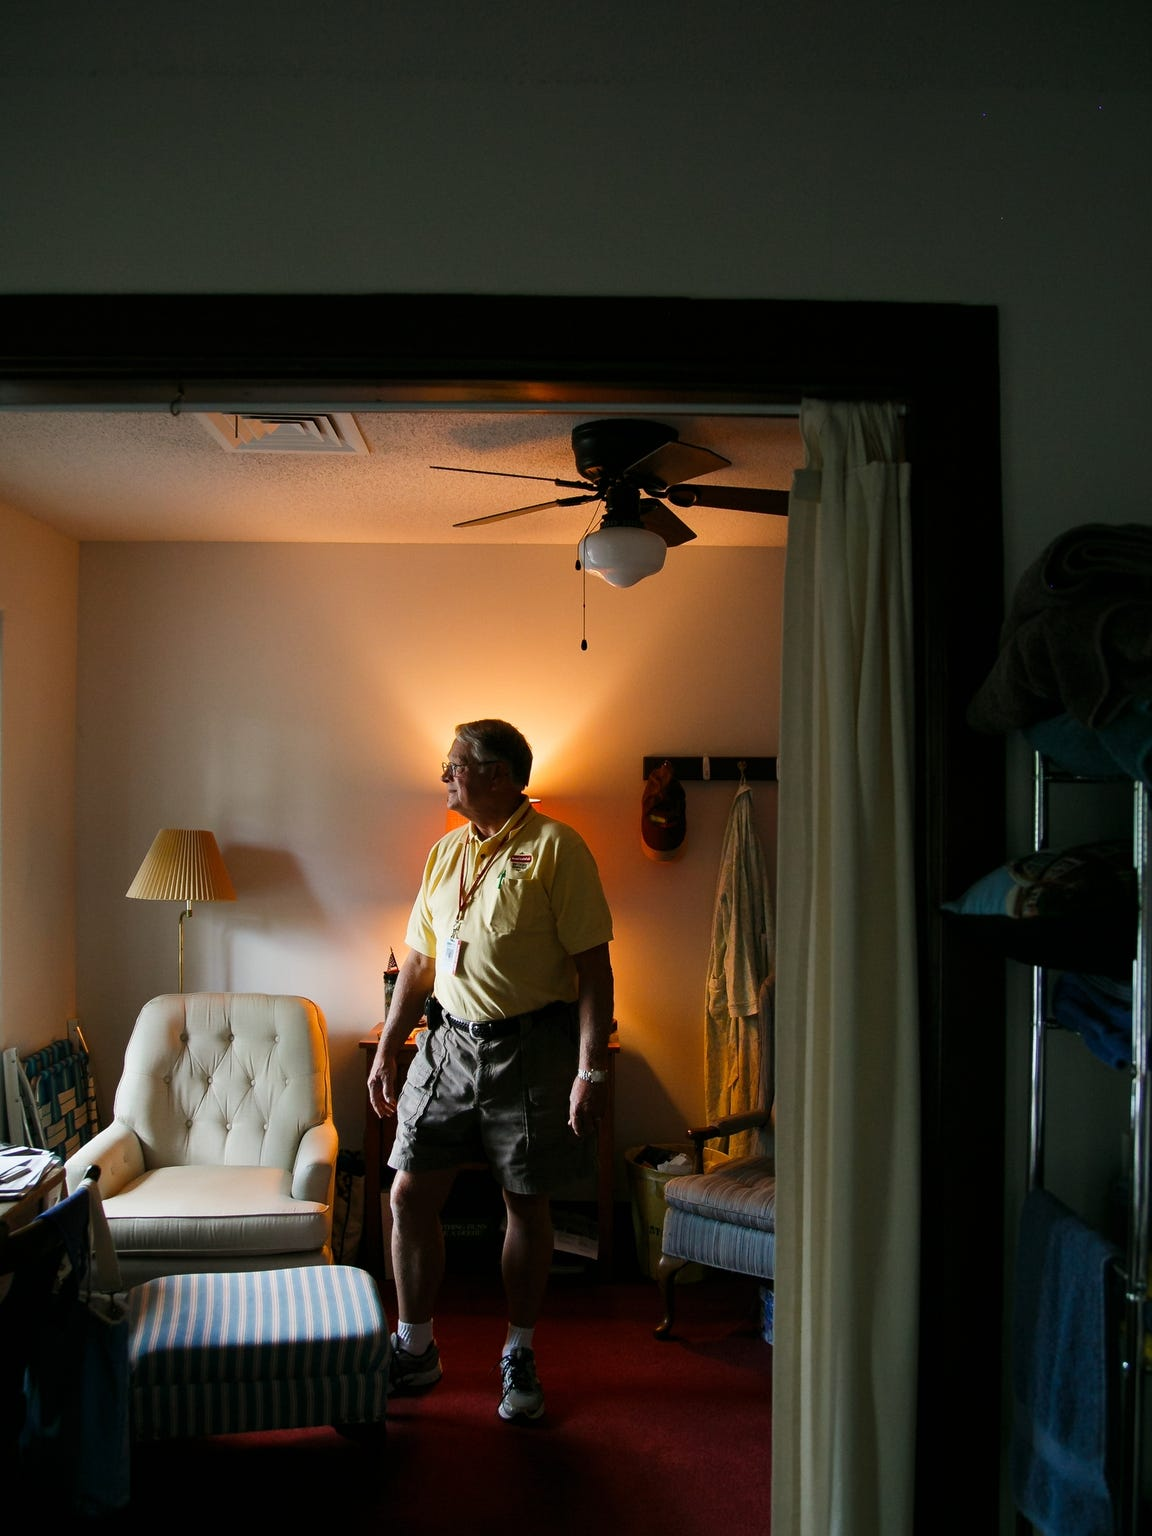 Iowa State Fair Board member Jerry Parkin stands inside his dorm room on the second floor of the Administration Building.